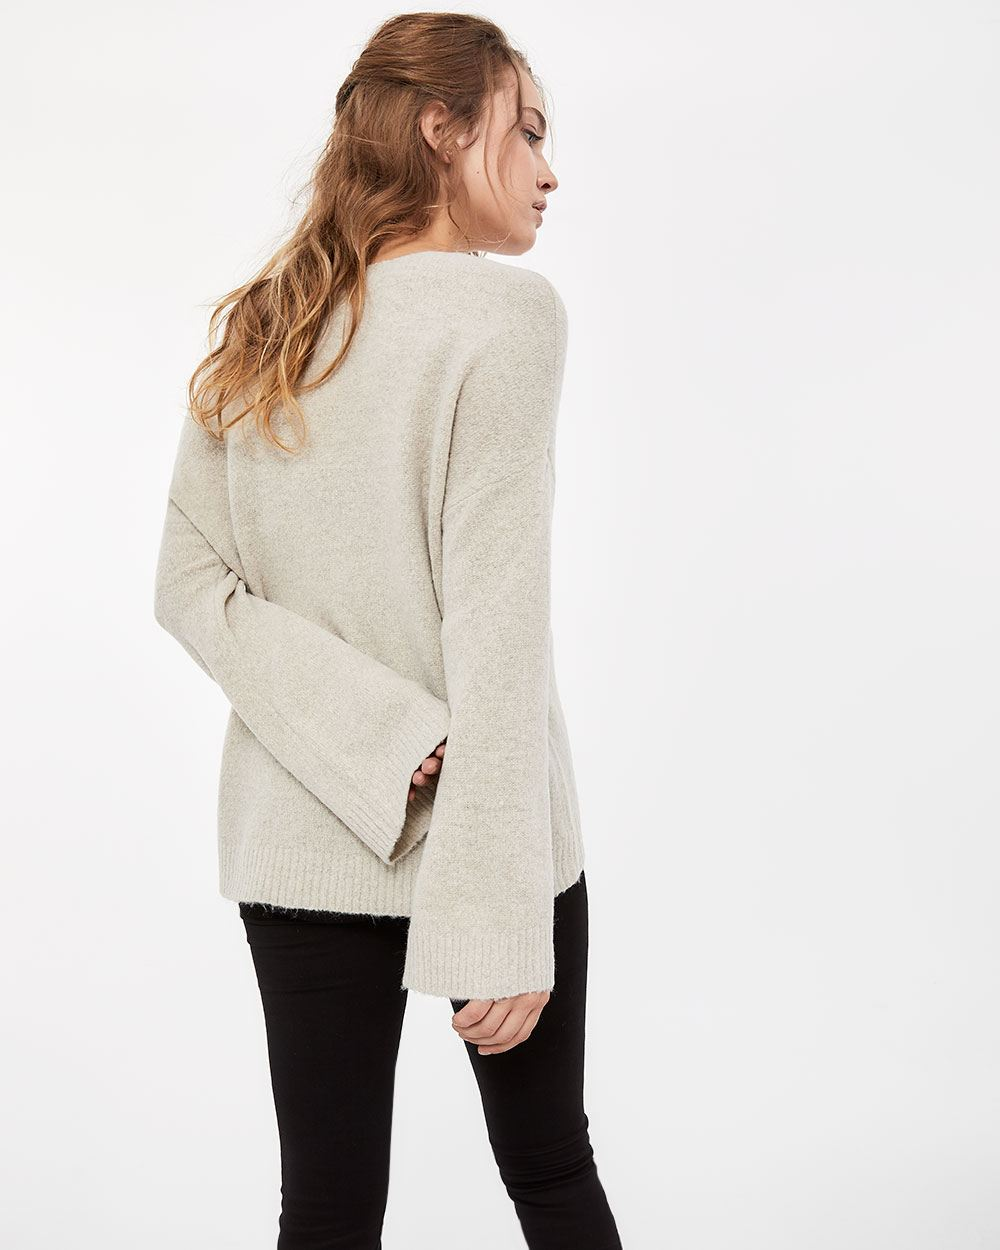 Pagode Sleeve V-neck Sweater